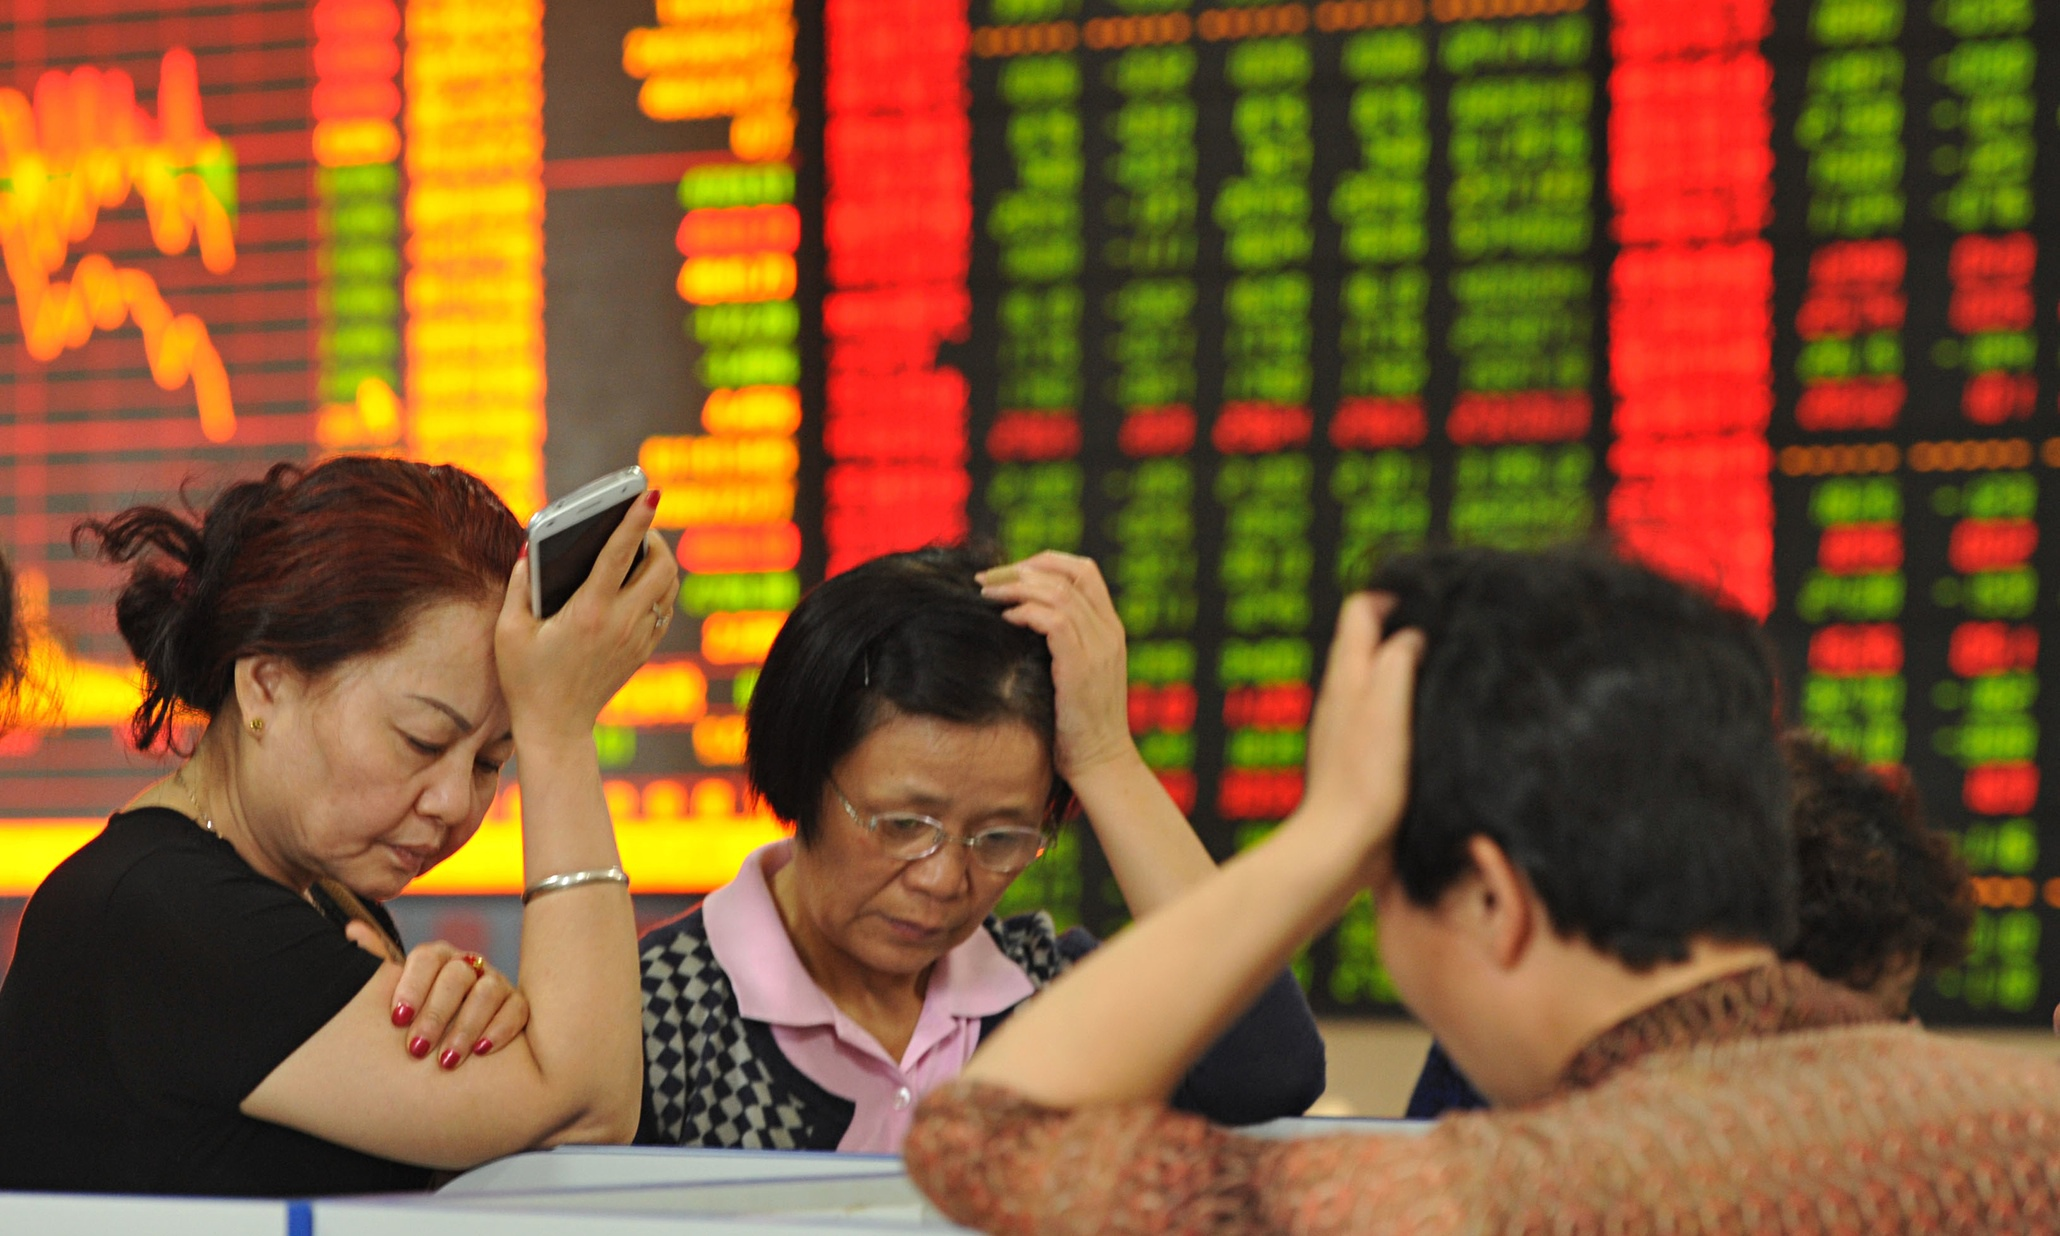 the effects of the 2015 stock market crash in china on its economy With china being the second-largest economy in the world, investors around the world are anxious about the major slide in the chinese stock market stocks in the us are falling dramatically.